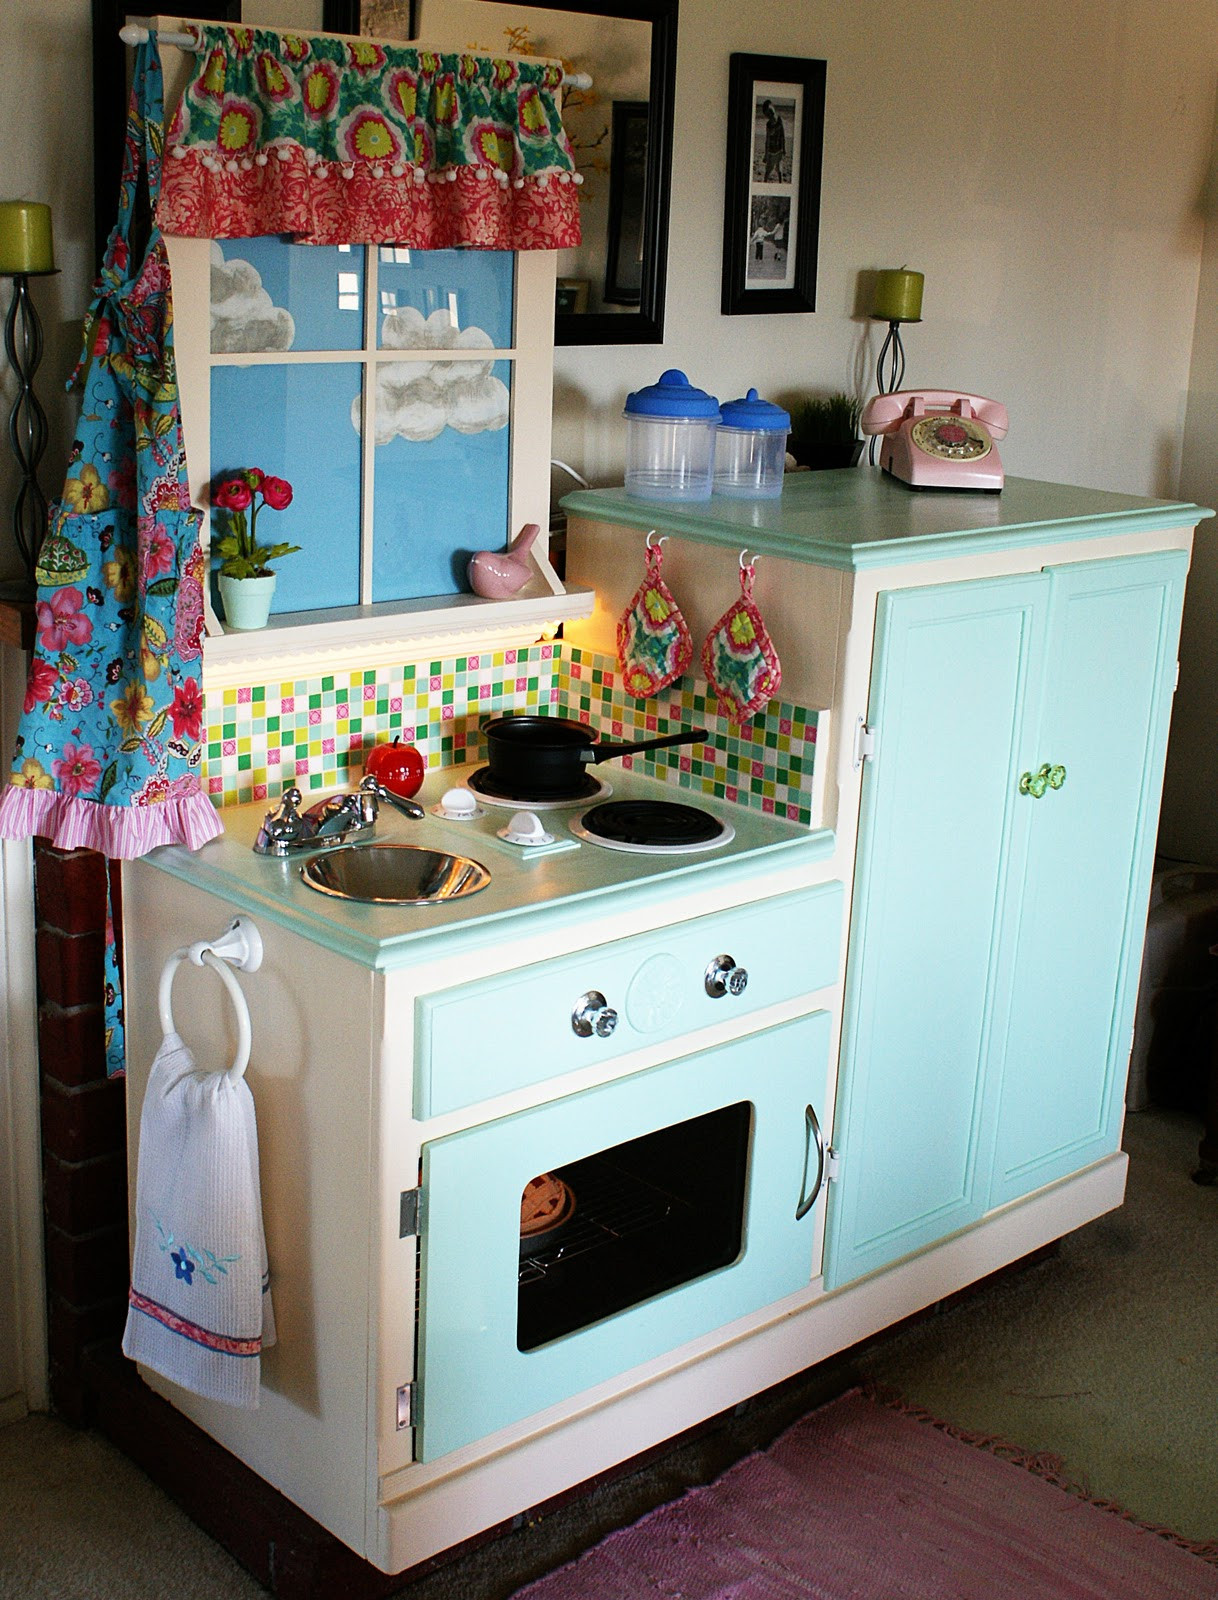 Best ideas about Kids Kitchen DIY . Save or Pin Easy Peasy Pie Play Kitchen Now.